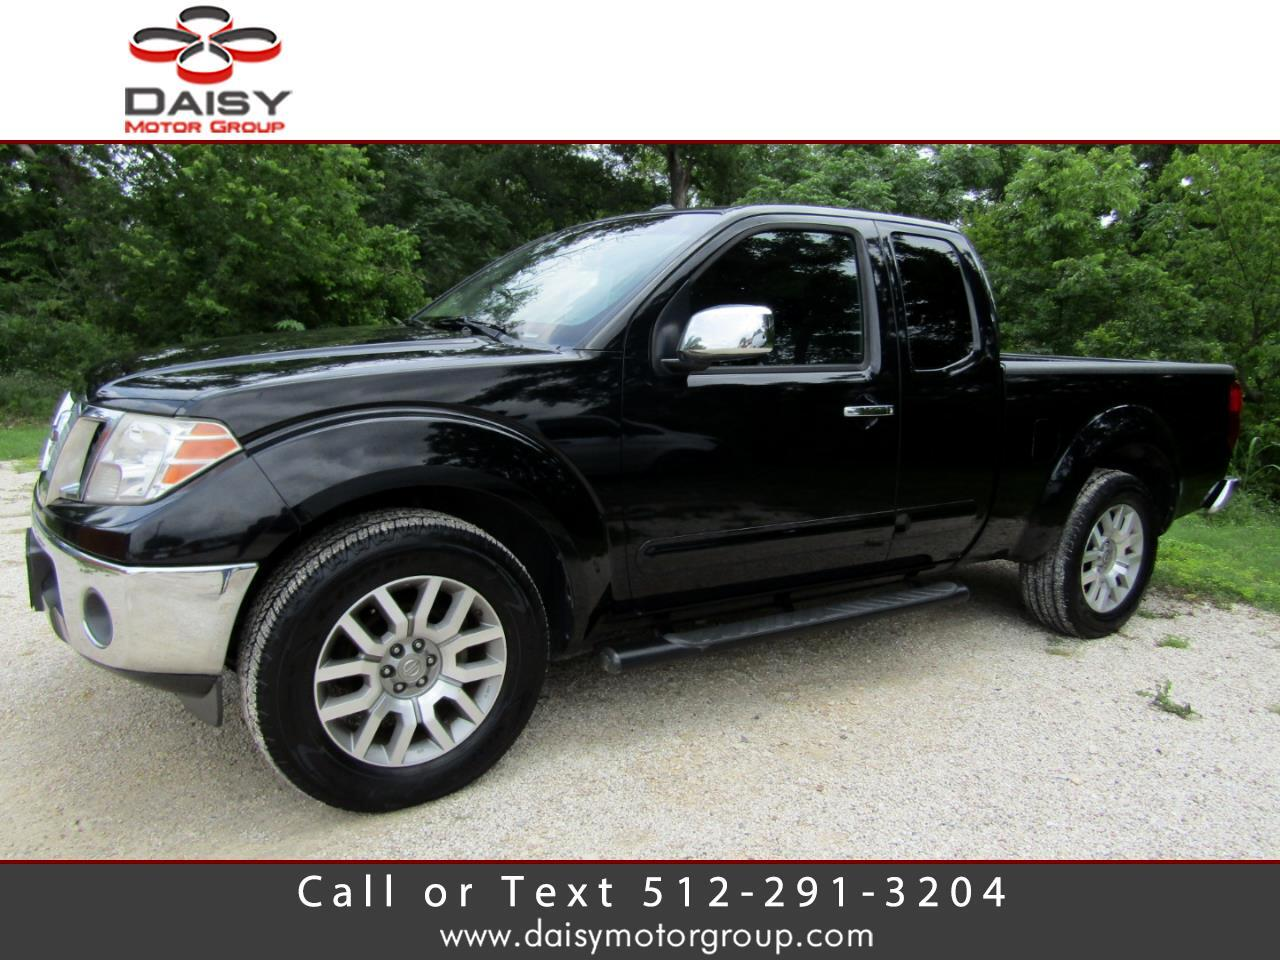 2009 Nissan Frontier 2WD King Cab V6 Auto LE